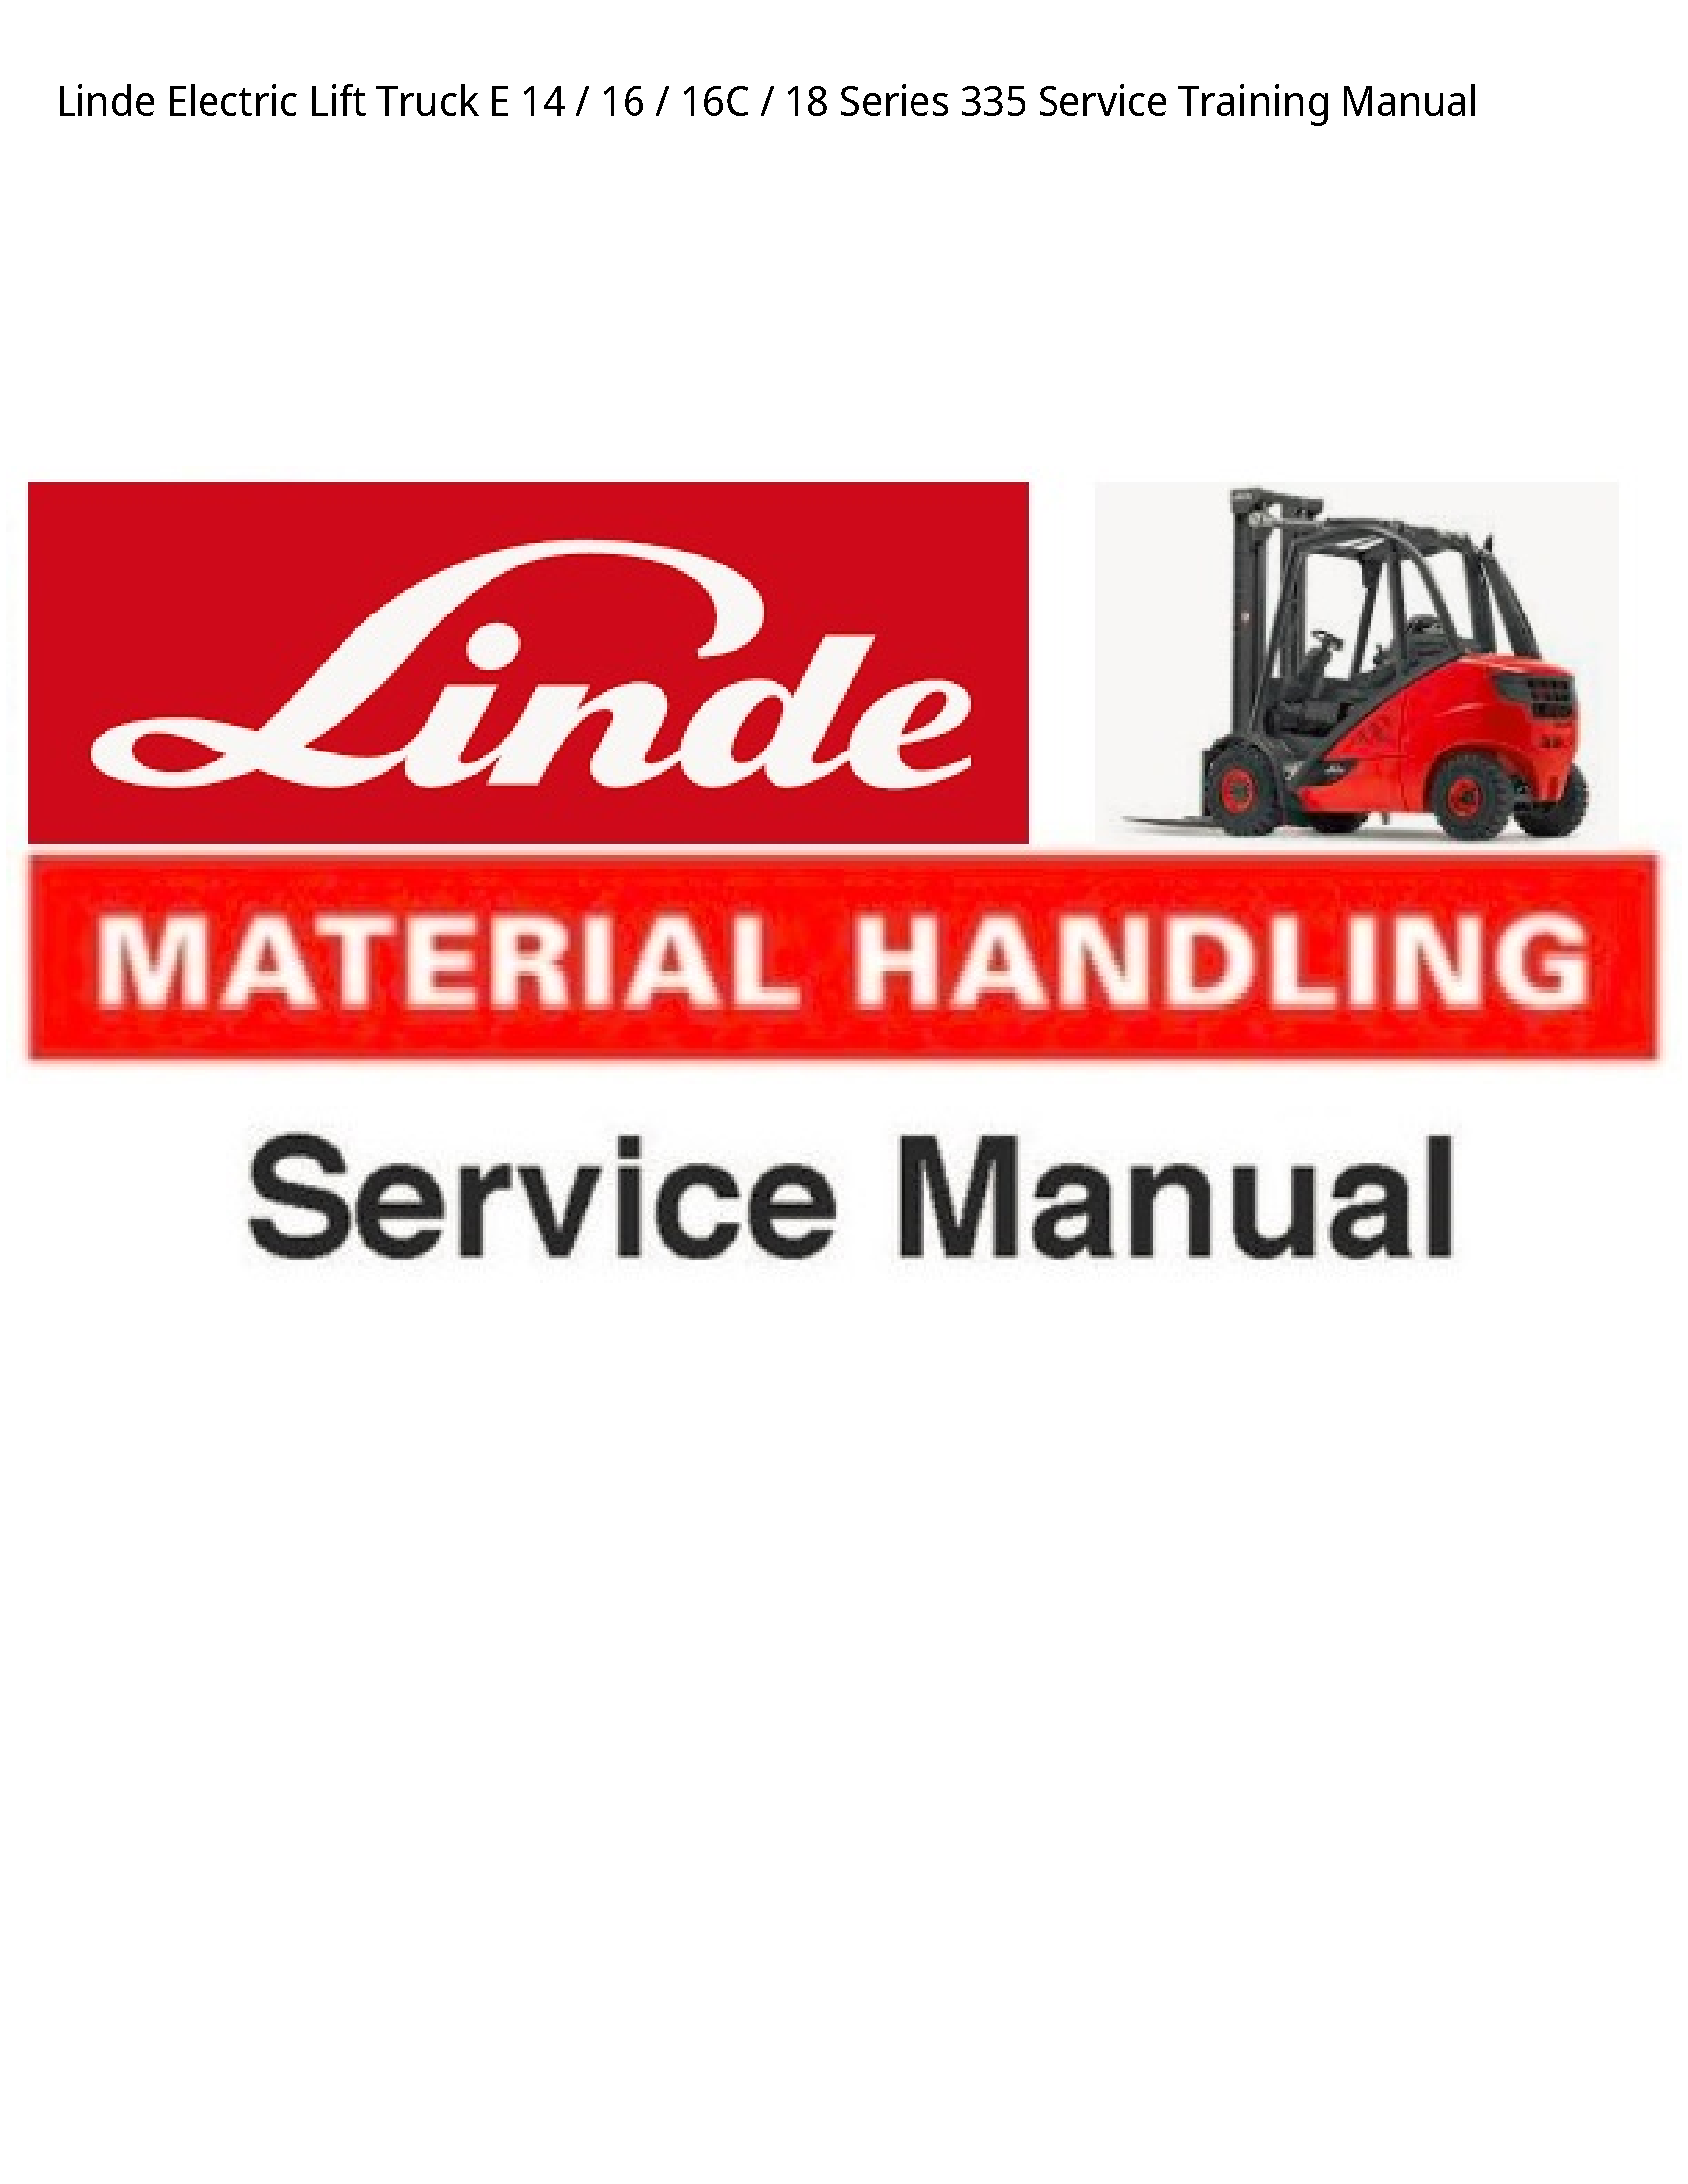 Linde 14 Electric Lift Truck Series Service Training manual